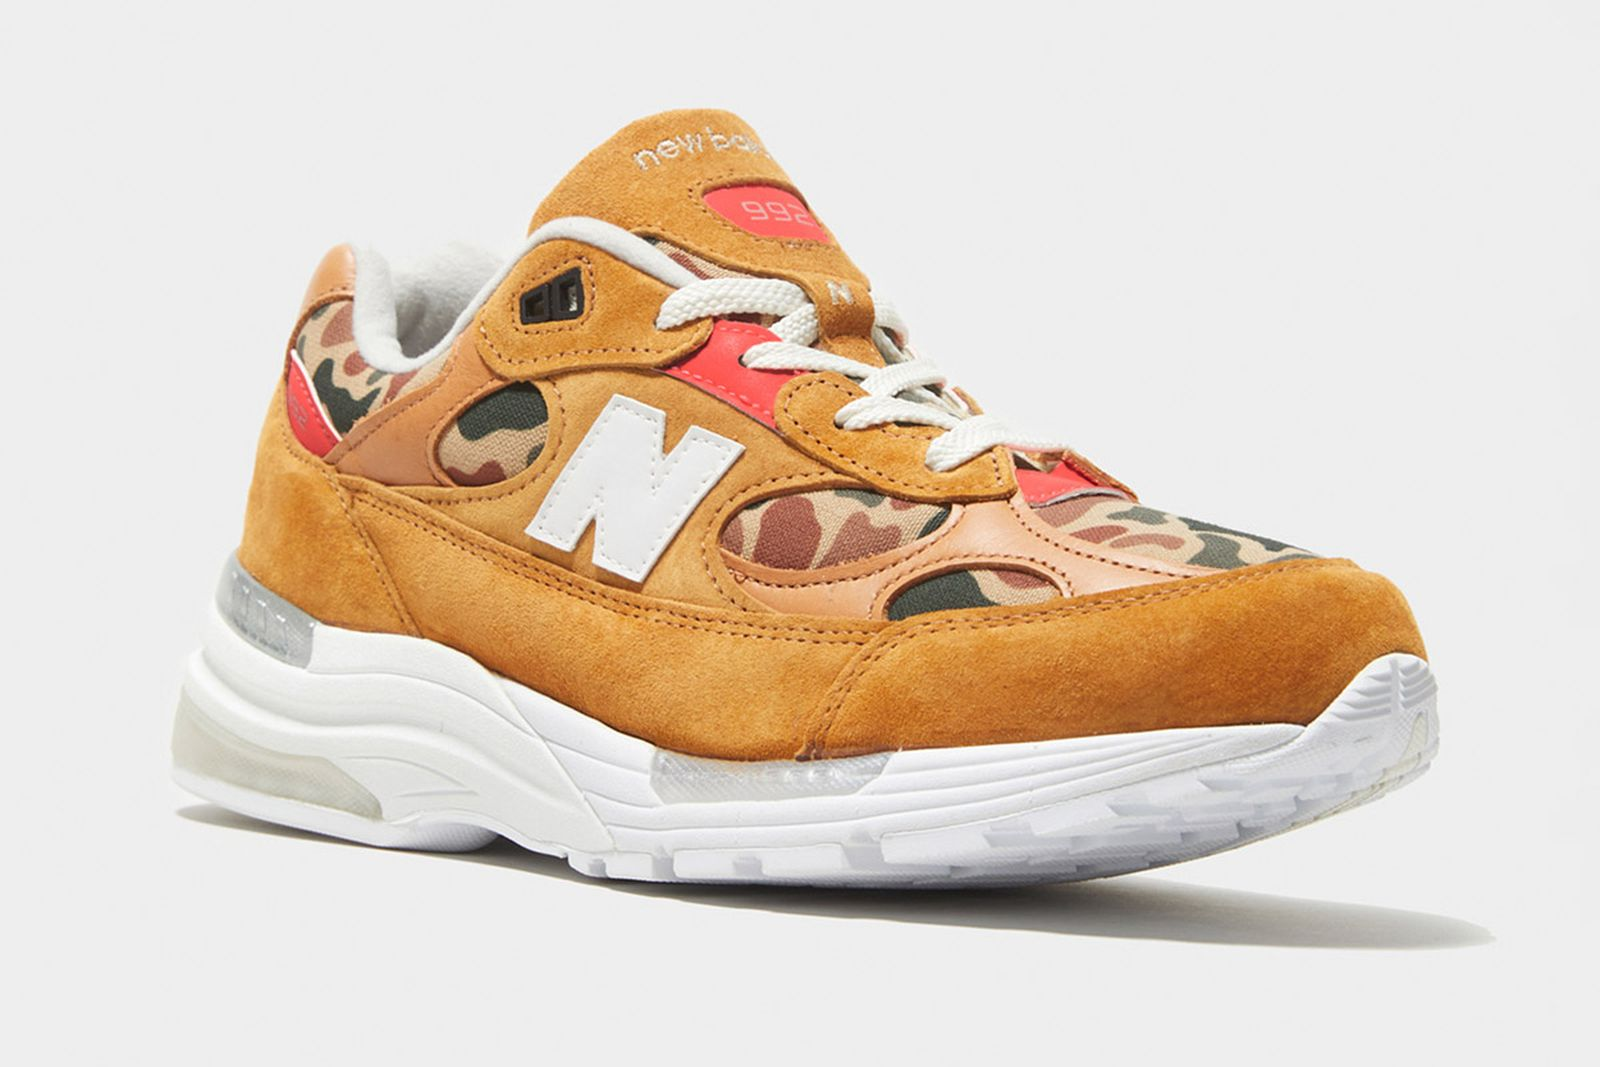 todd-snyder-ny-new-balance-992-release-date-price-02